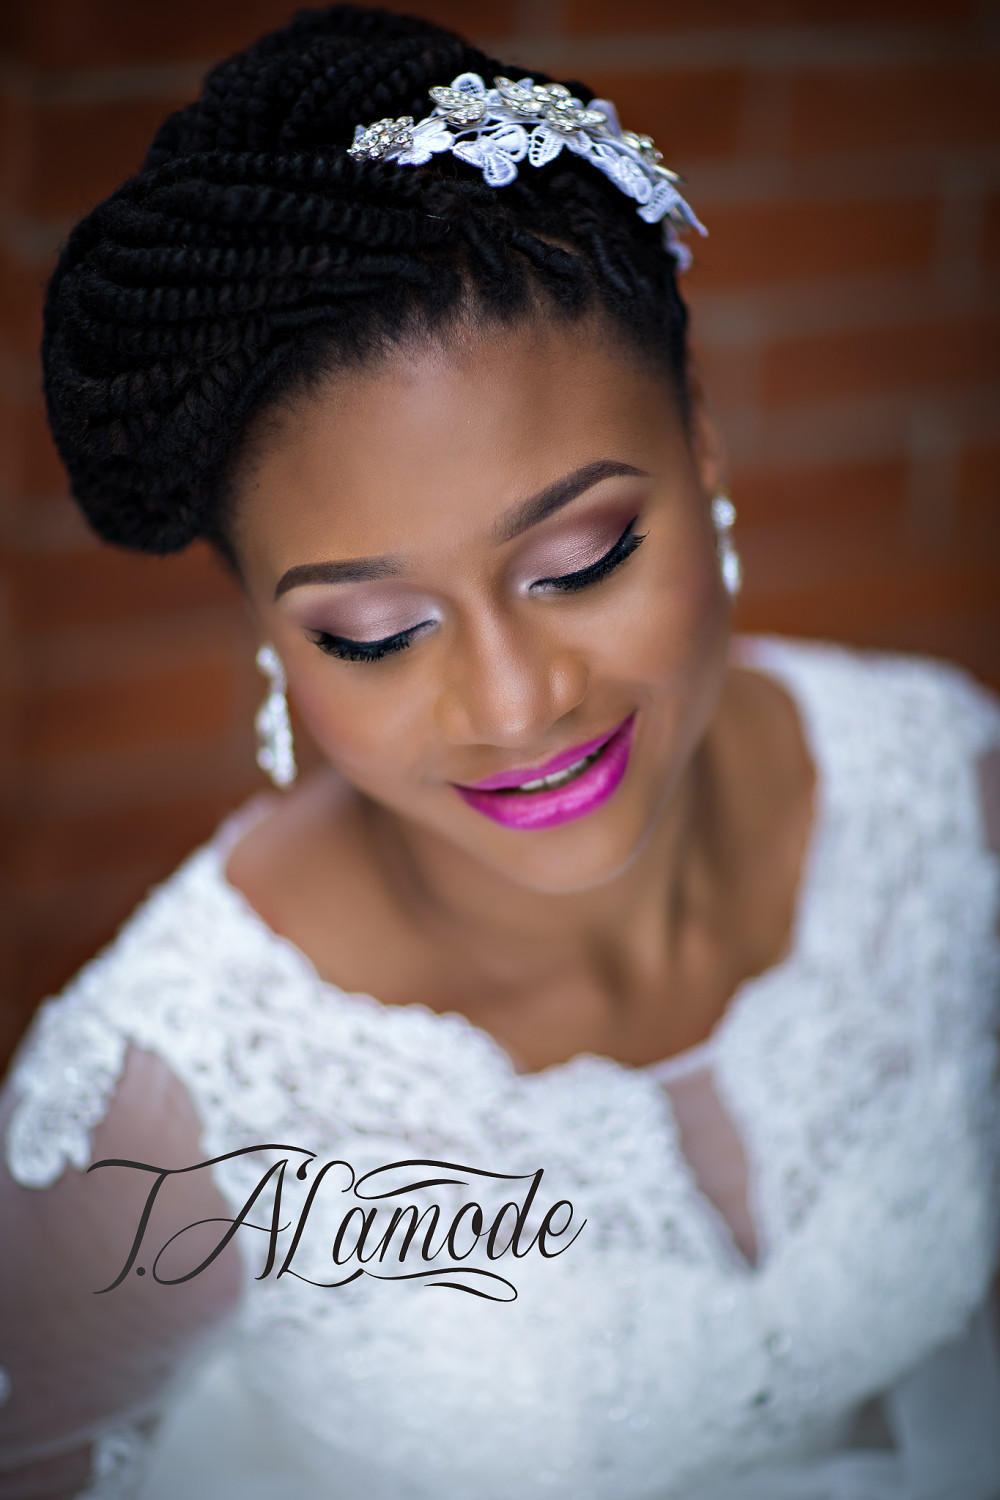 Striking Natural Hair Looks for the 2015 Bride! T.Alamode ...